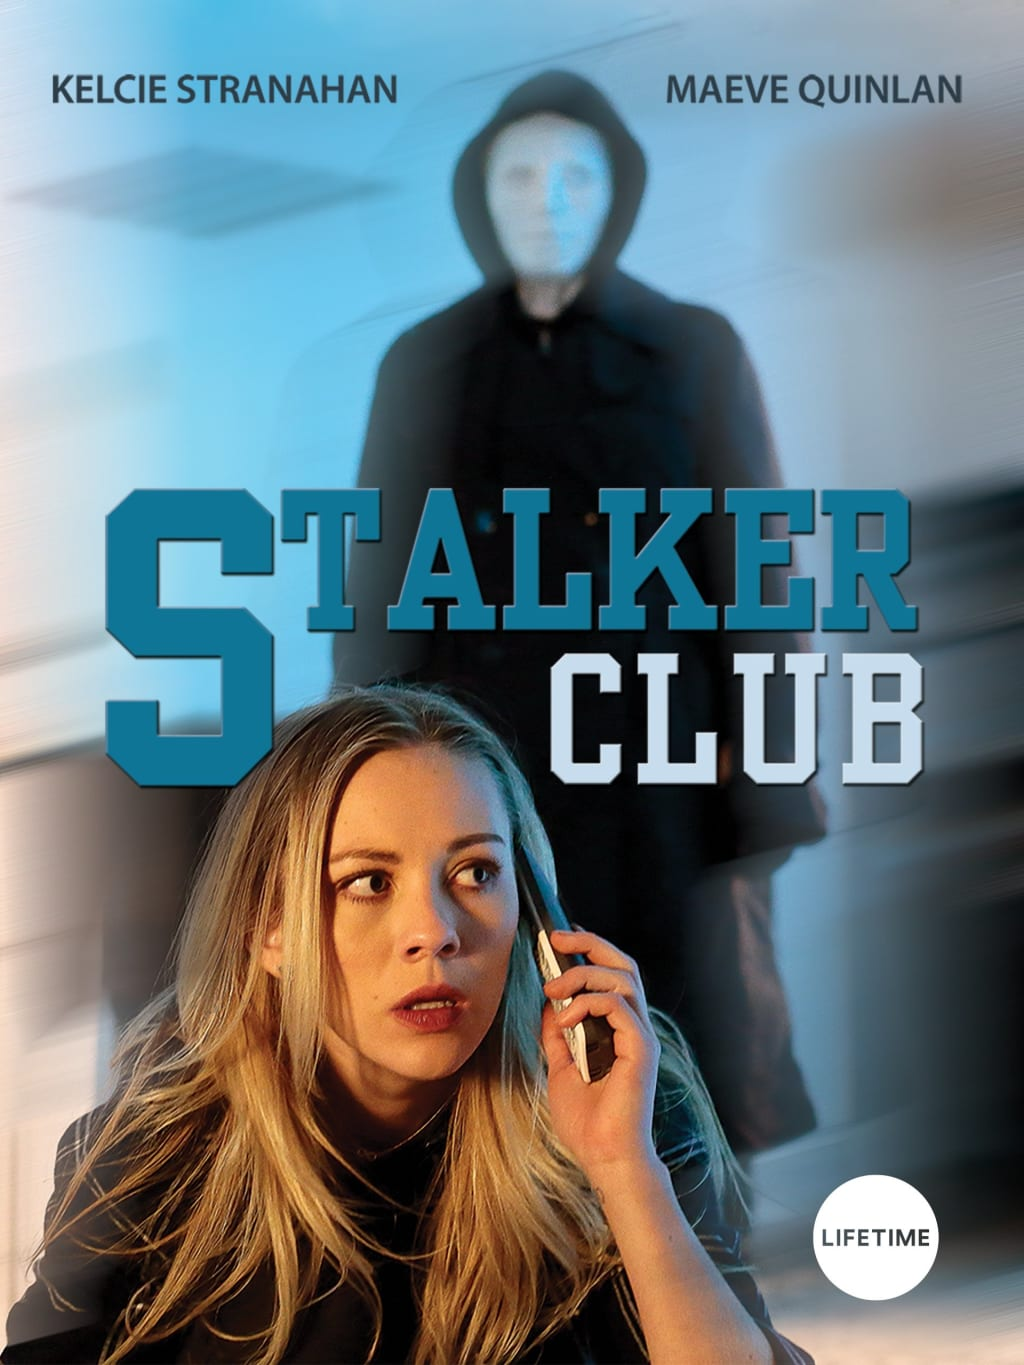 Lifetime Review: 'The Stalker Club'